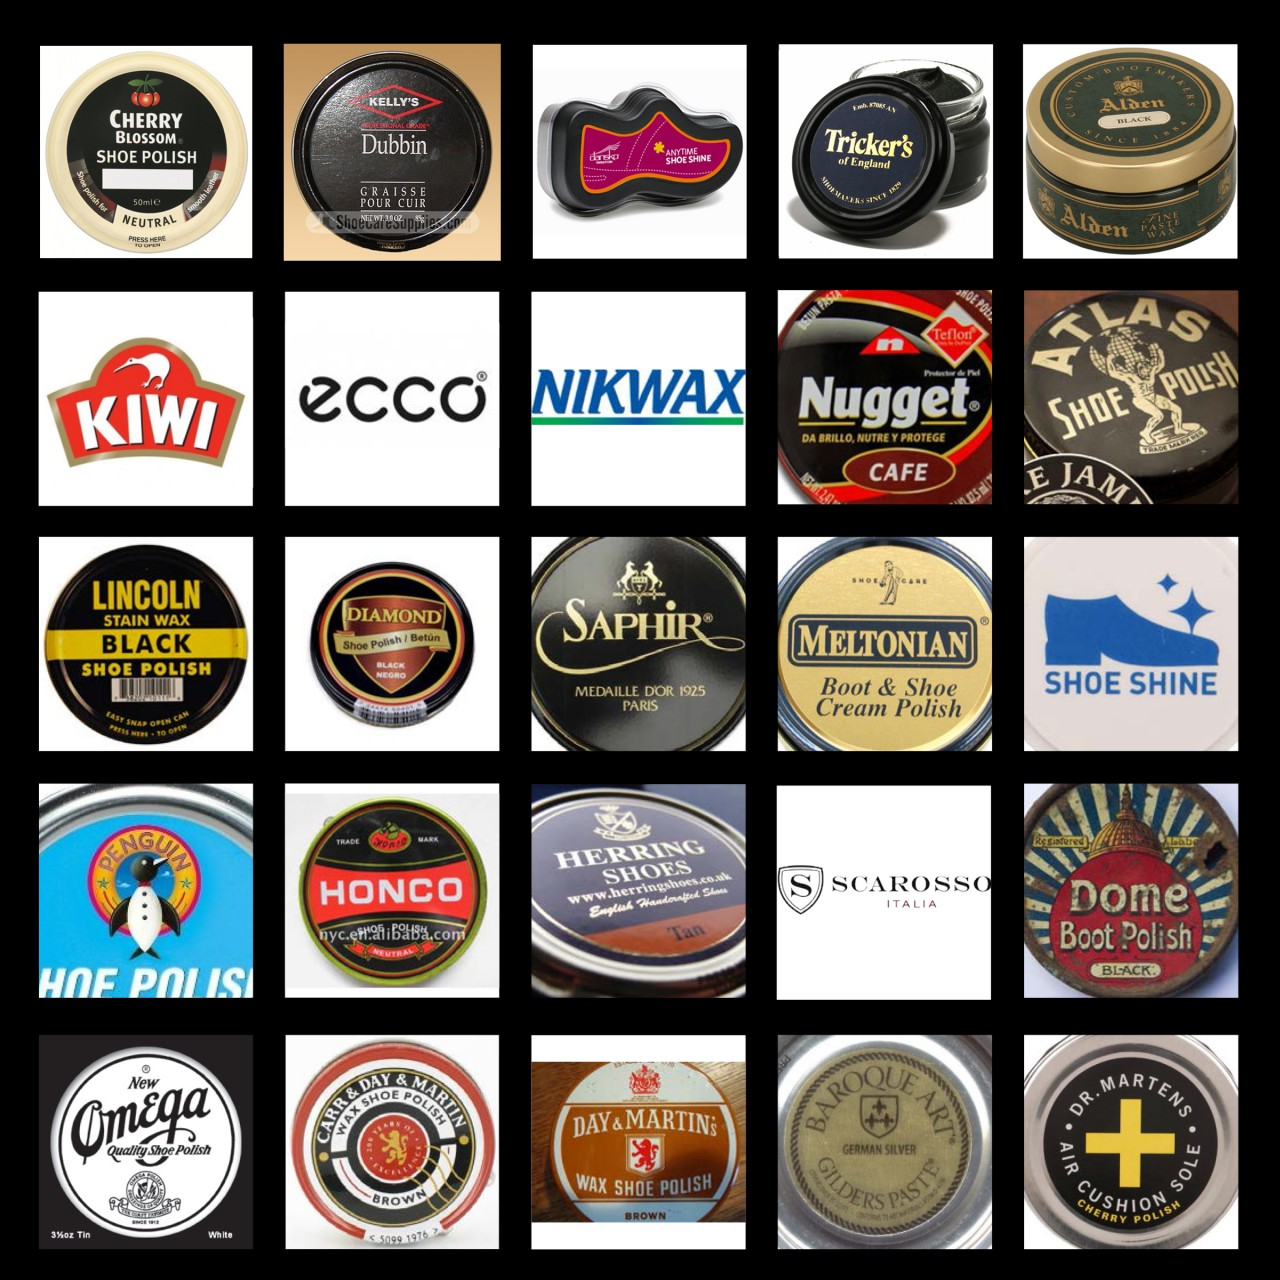 Image of Caviar Shoe Care competitive brand analysis